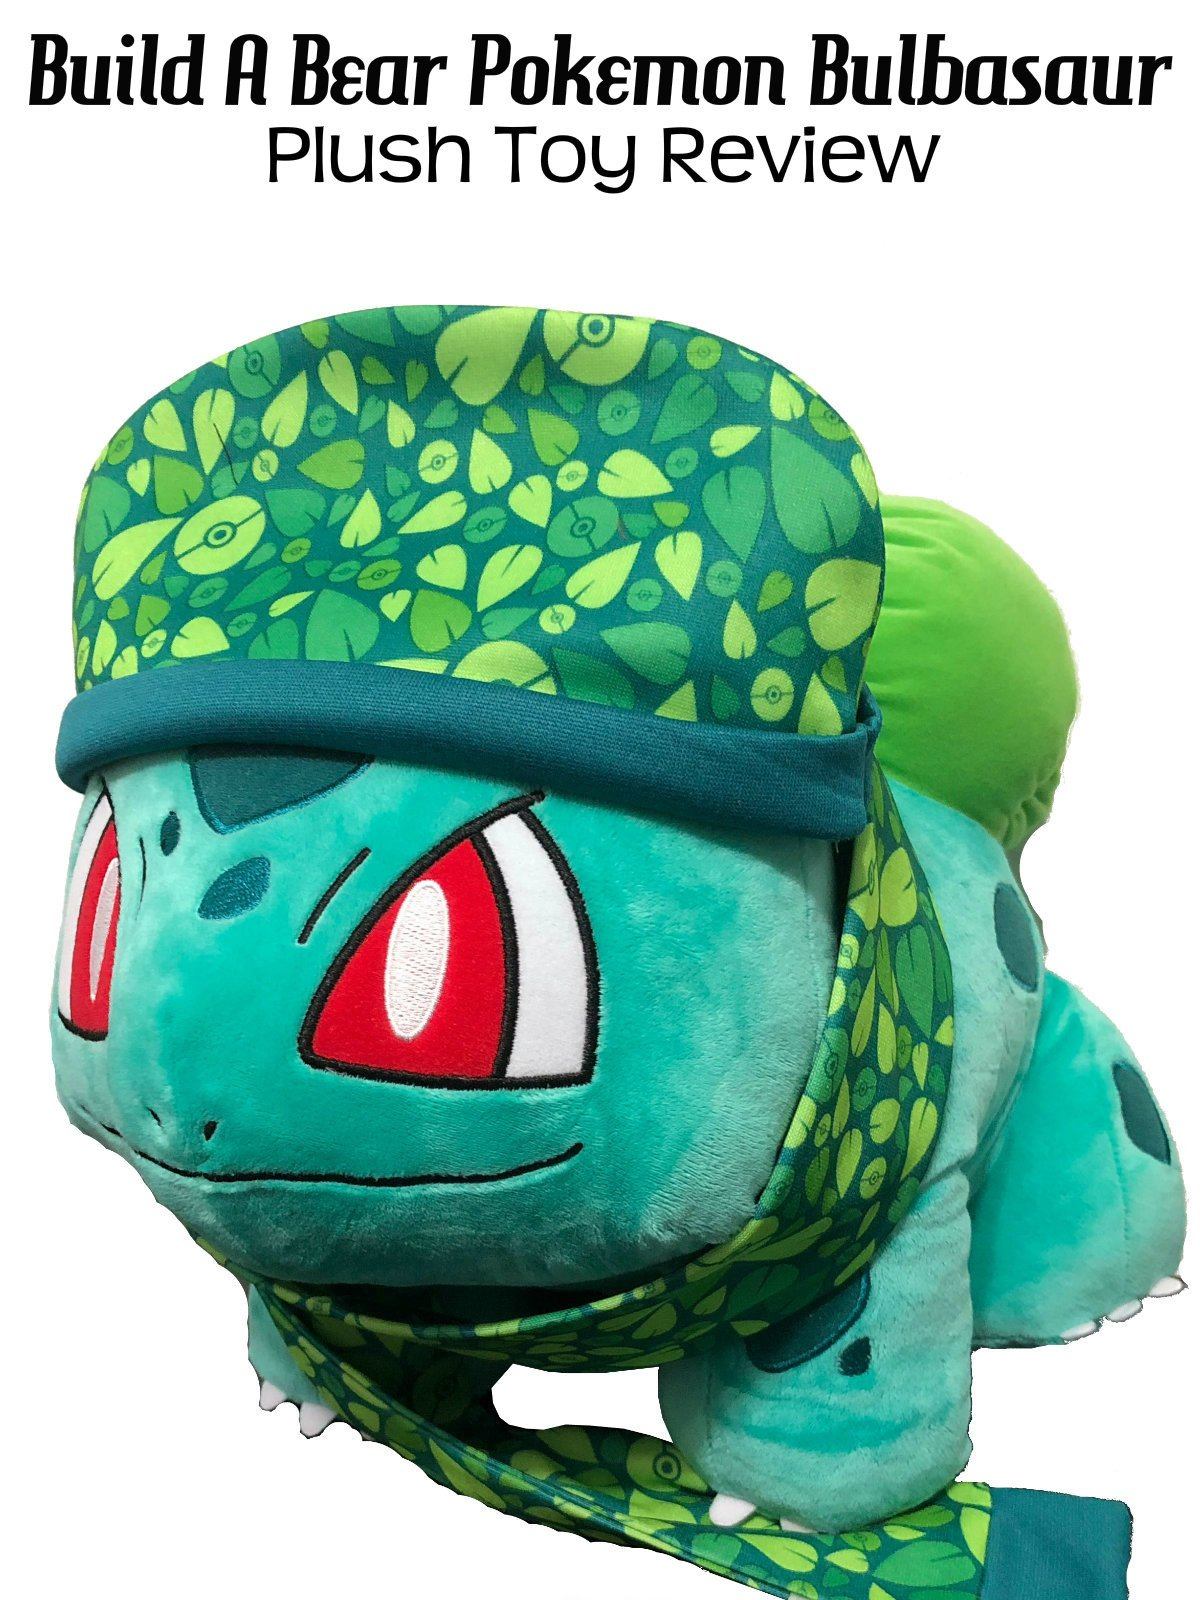 Review: Build A Bear Pokemon Bulbasaur Plush Toy Review on Amazon Prime Video UK